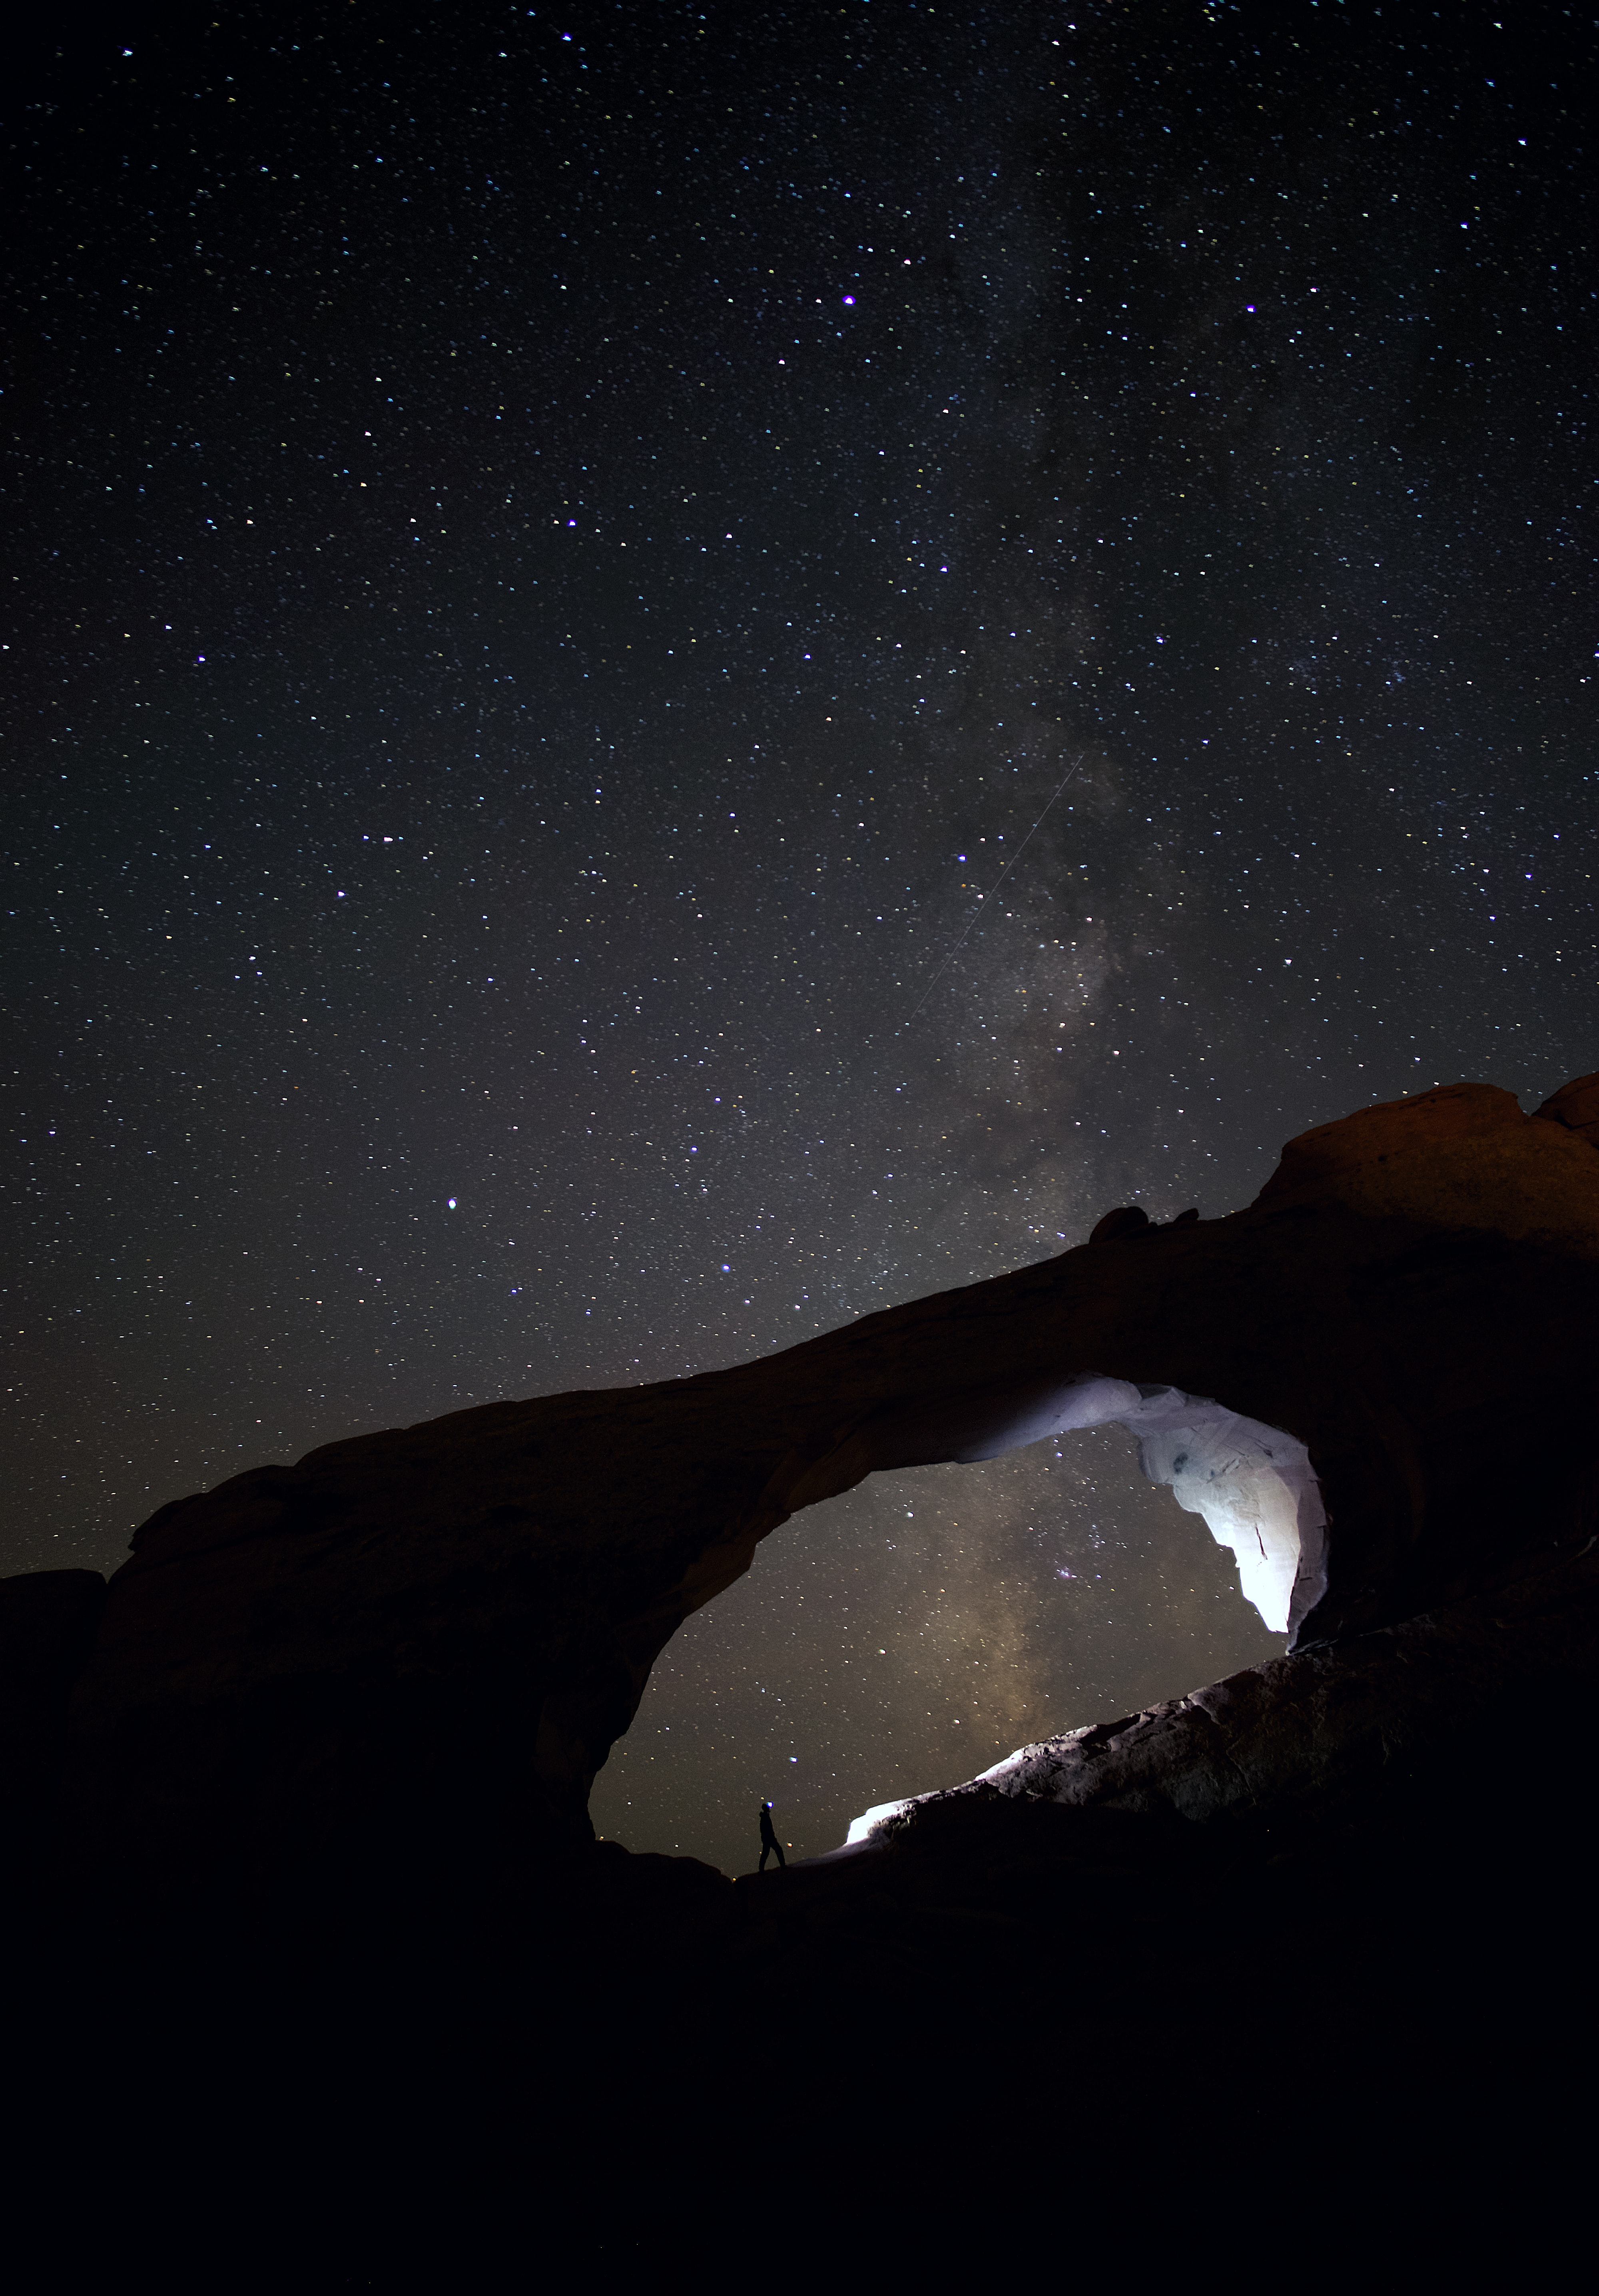 silhouette photo of person stand on rocks during nighttime